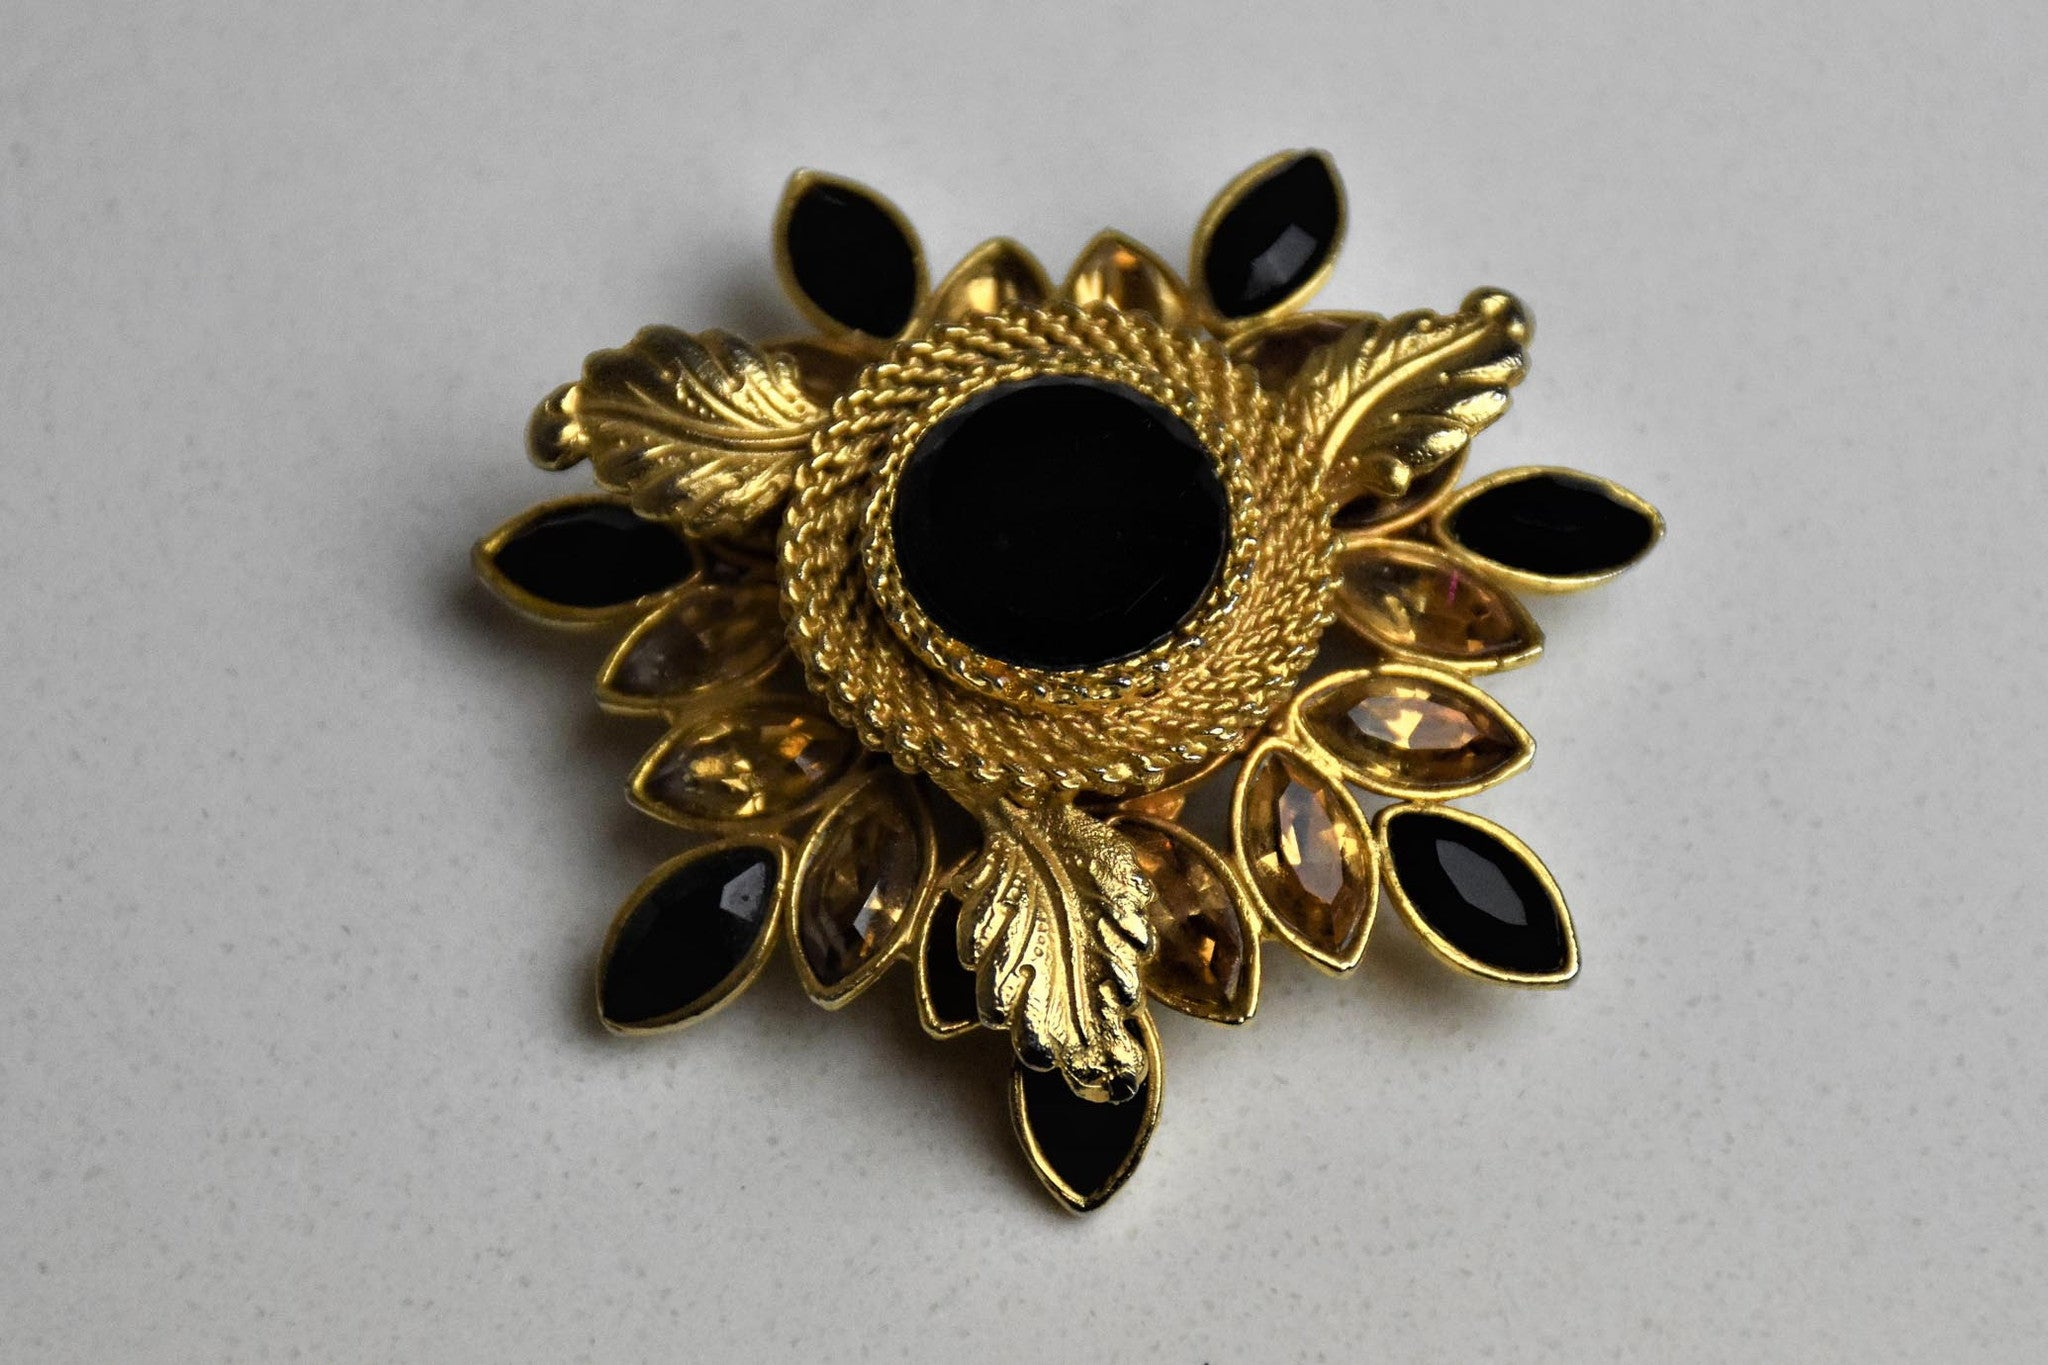 1960's American star burst gold-tone and onyx brooch